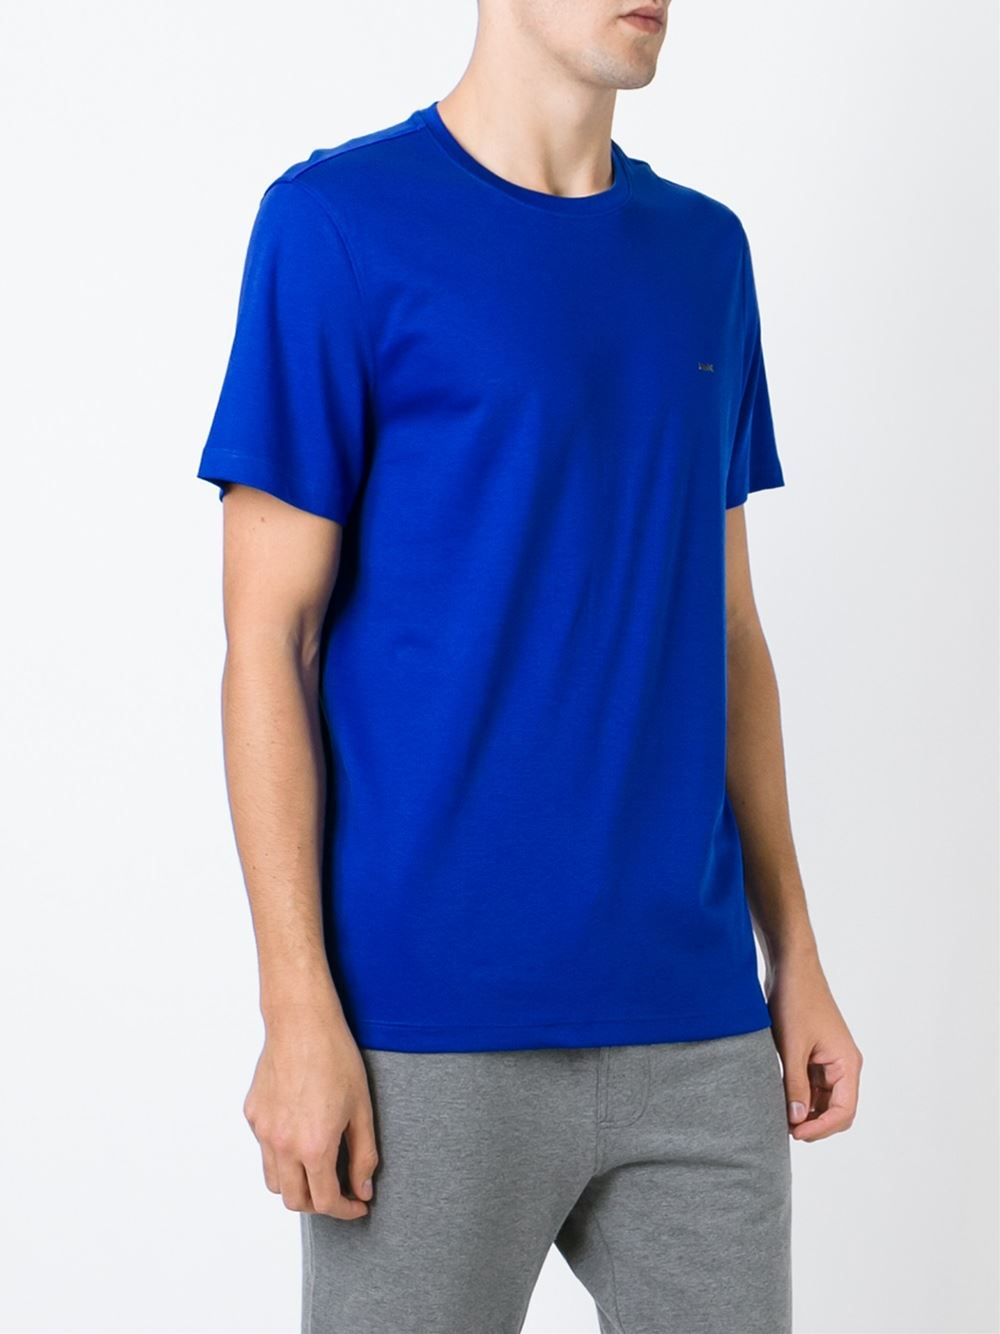 Michael kors round neck t shirt in blue for men lyst for Michael kors mens shirts sale